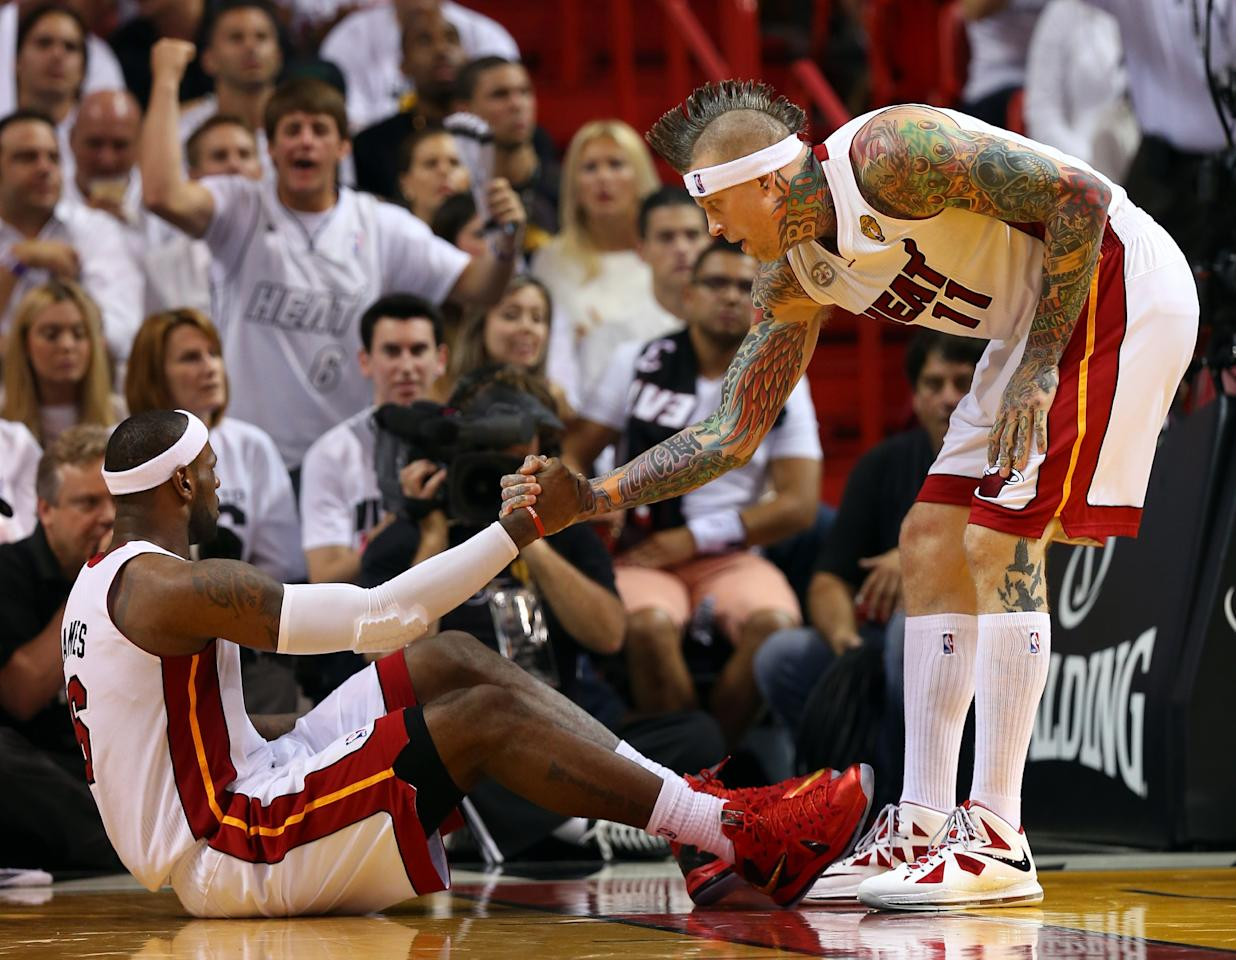 MIAMI, FL - JUNE 18:  LeBron James #6 is helped up by Chris Andersen #11 of the Miami Heat while taking on the San Antonio Spurs during Game Six of the 2013 NBA Finals at AmericanAirlines Arena on June 18, 2013 in Miami, Florida. NOTE TO USER: User expressly acknowledges and agrees that, by downloading and or using this photograph, User is consenting to the terms and conditions of the Getty Images License Agreement.  (Photo by Mike Ehrmann/Getty Images)